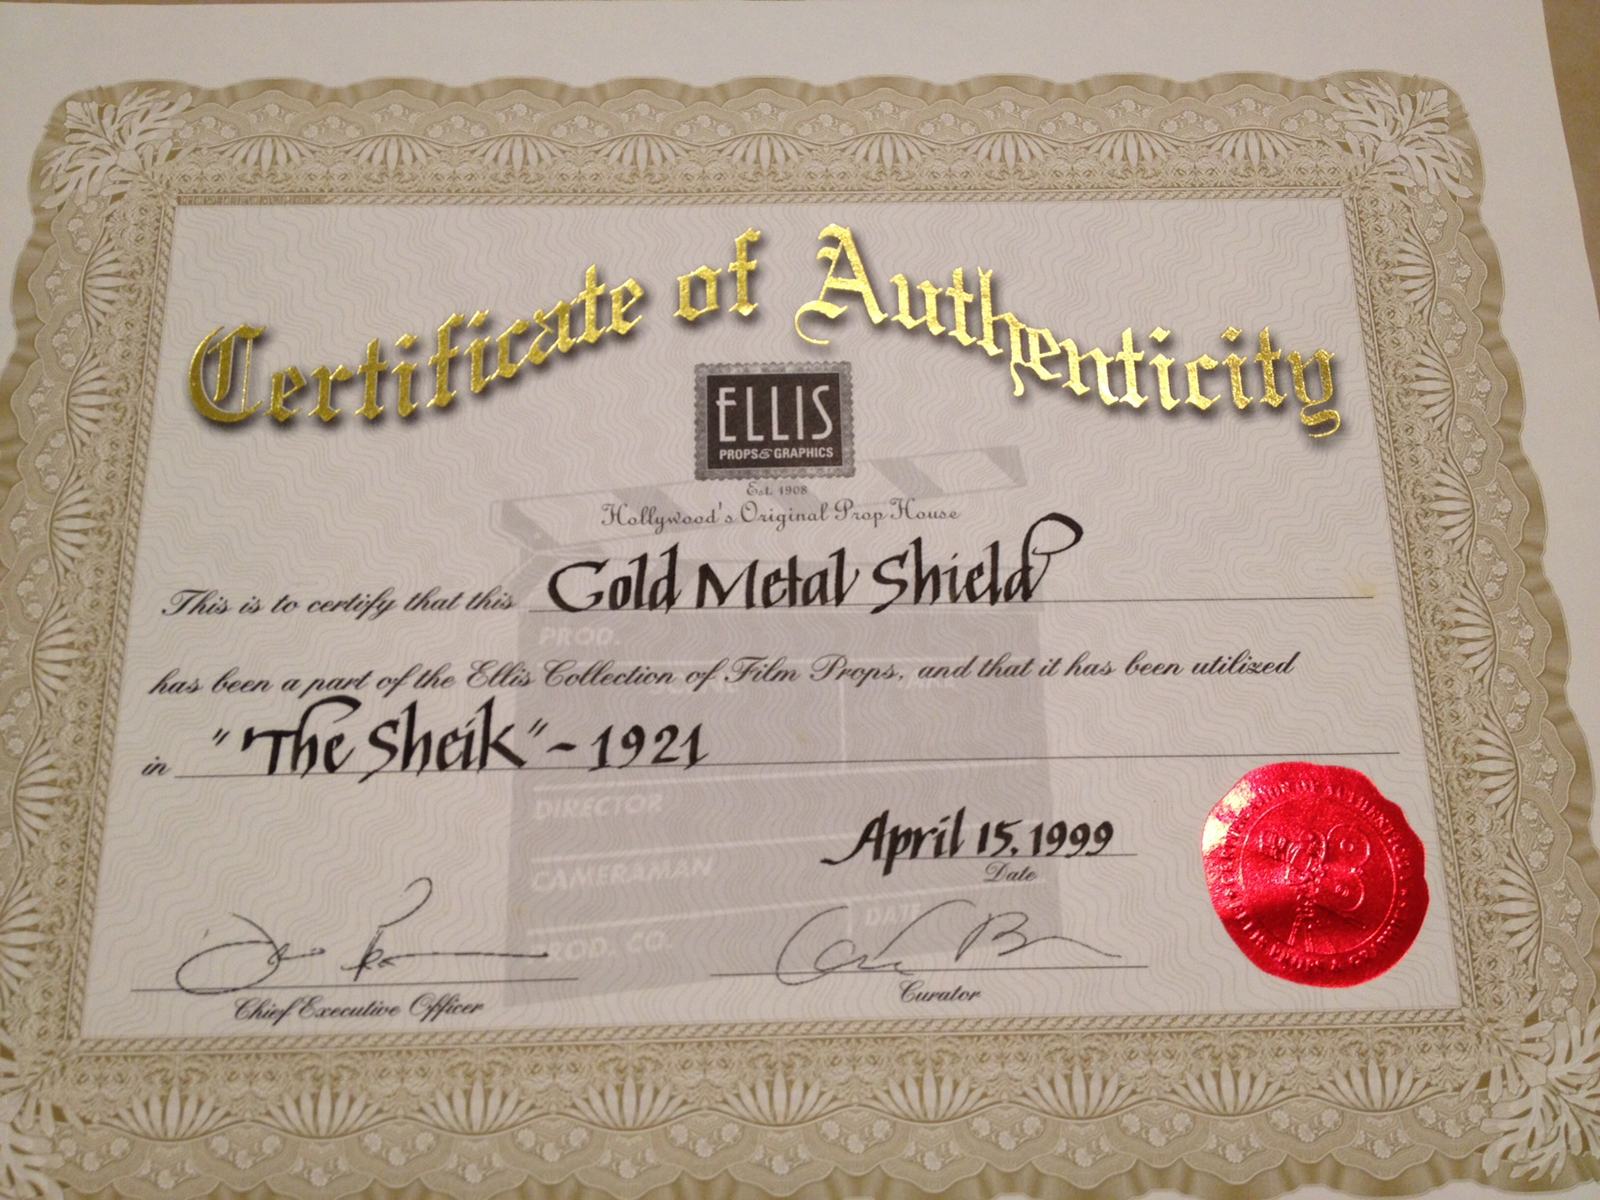 Ellis-Props-and-Graphics-Hollywood-TV-Movie-Prop-House-Certificate-of-Authenticity-COA-Example-02